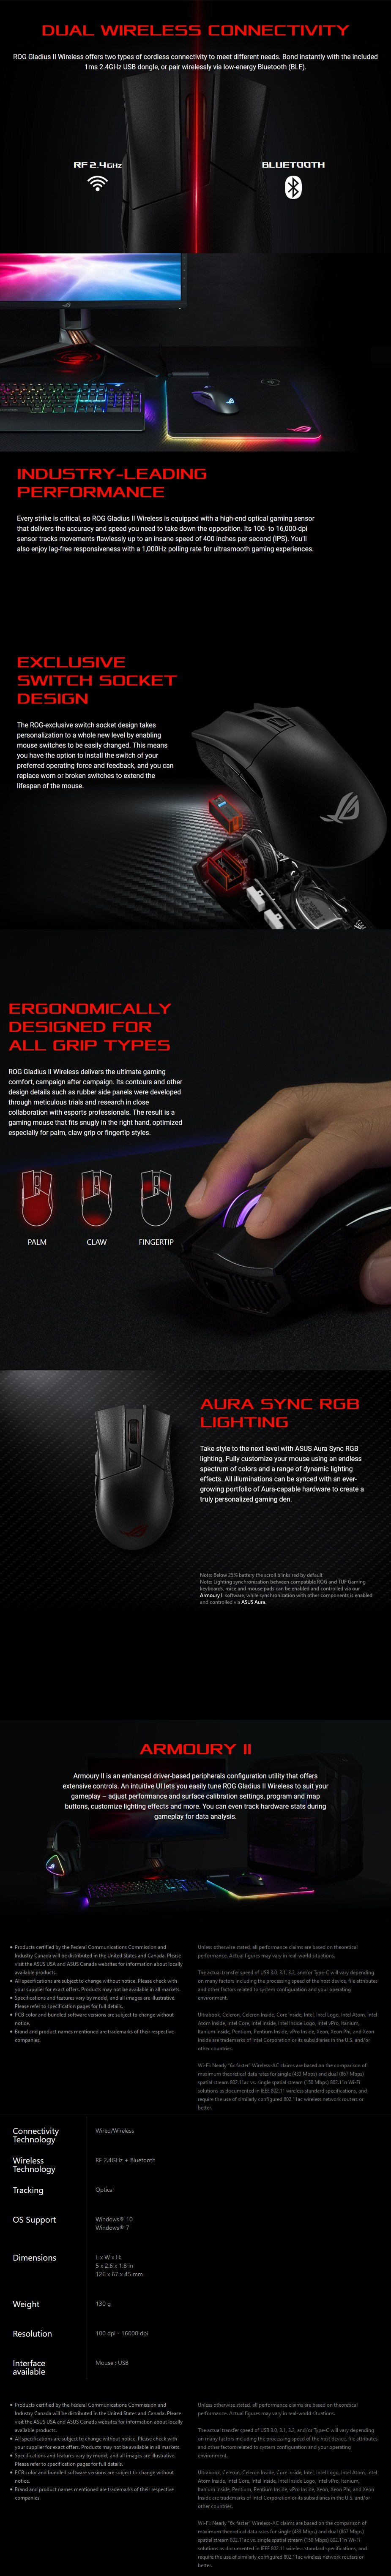 ASUS ROG Gladius II Core P702 Wireless Gaming Mouse - Desktop Overview